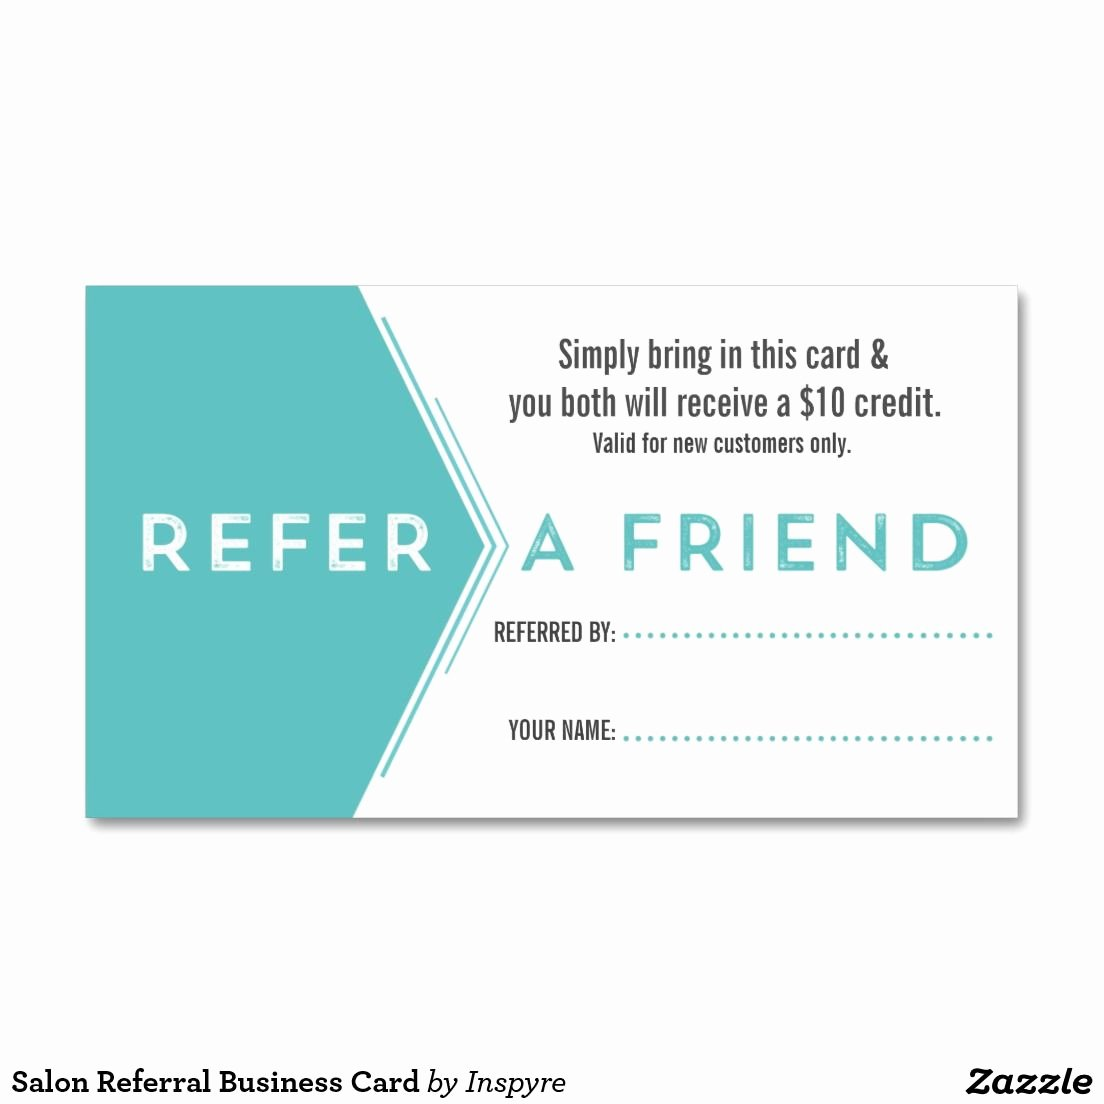 Referral Card Template Free Inspirational Salon Referral Business Card Zazzle